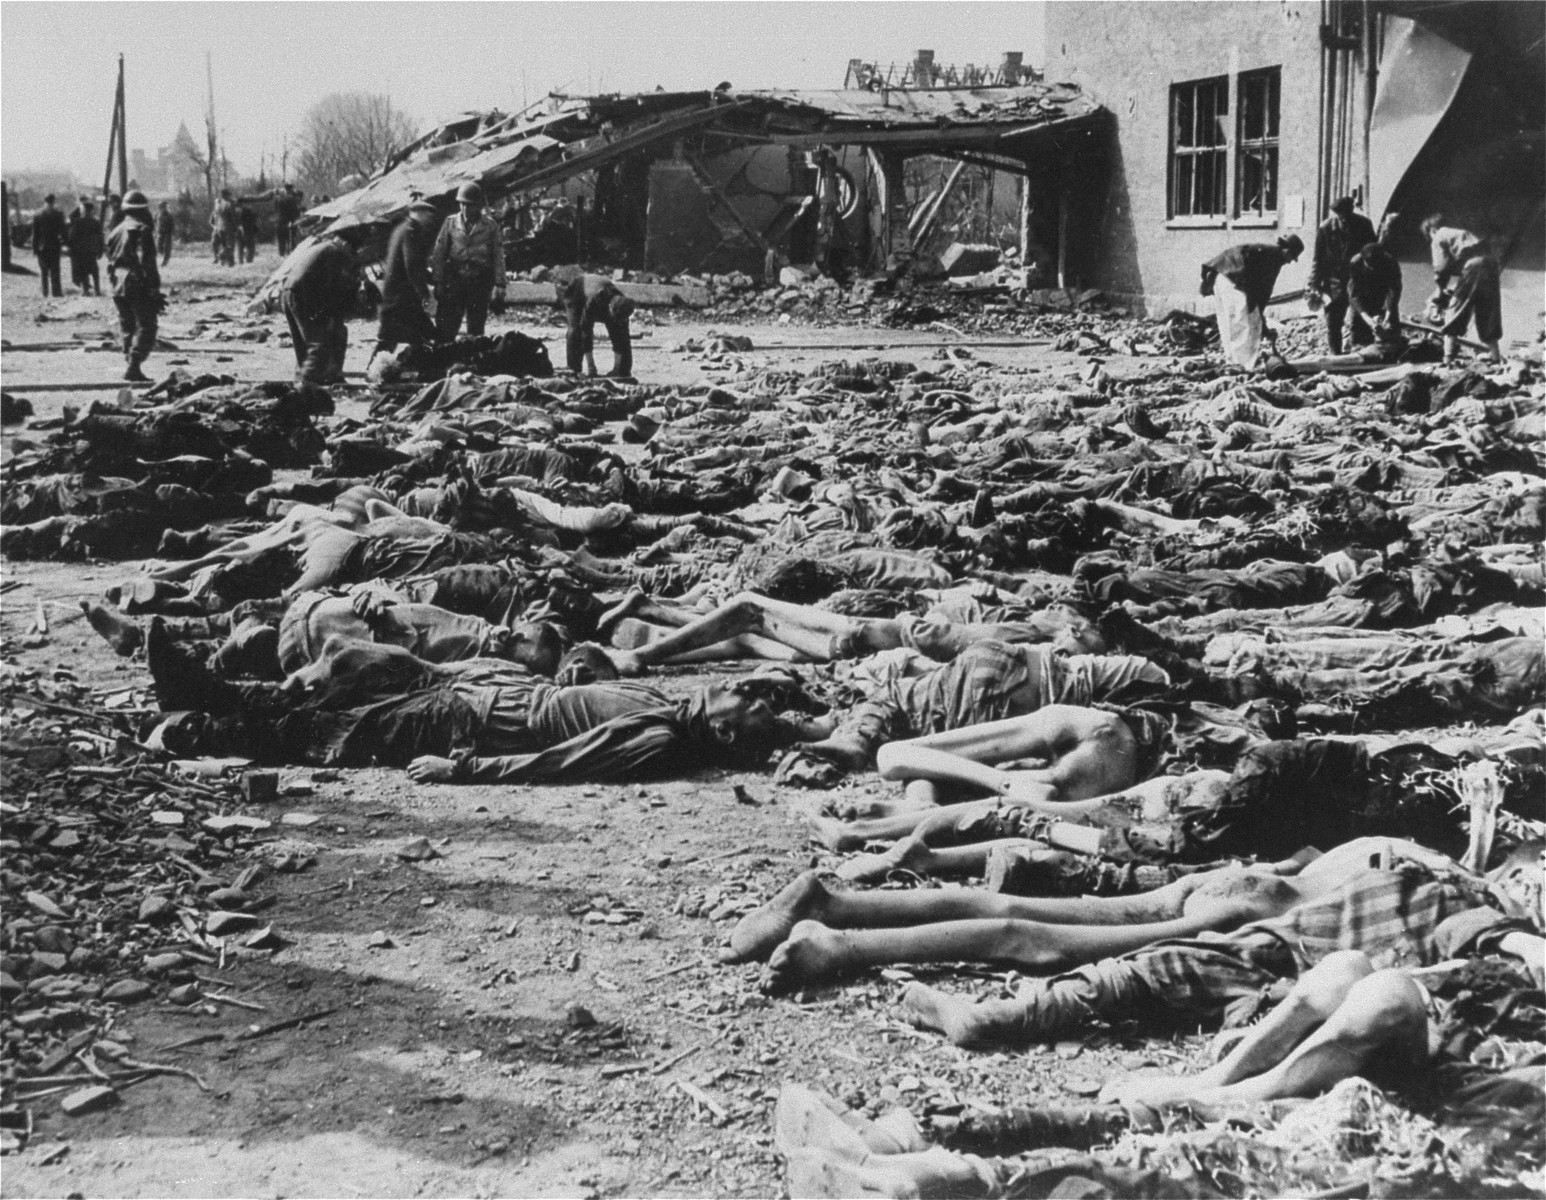 American troops supervise the burial of hundreds of corpses by German civilians from the nearby town of Nordhausen.